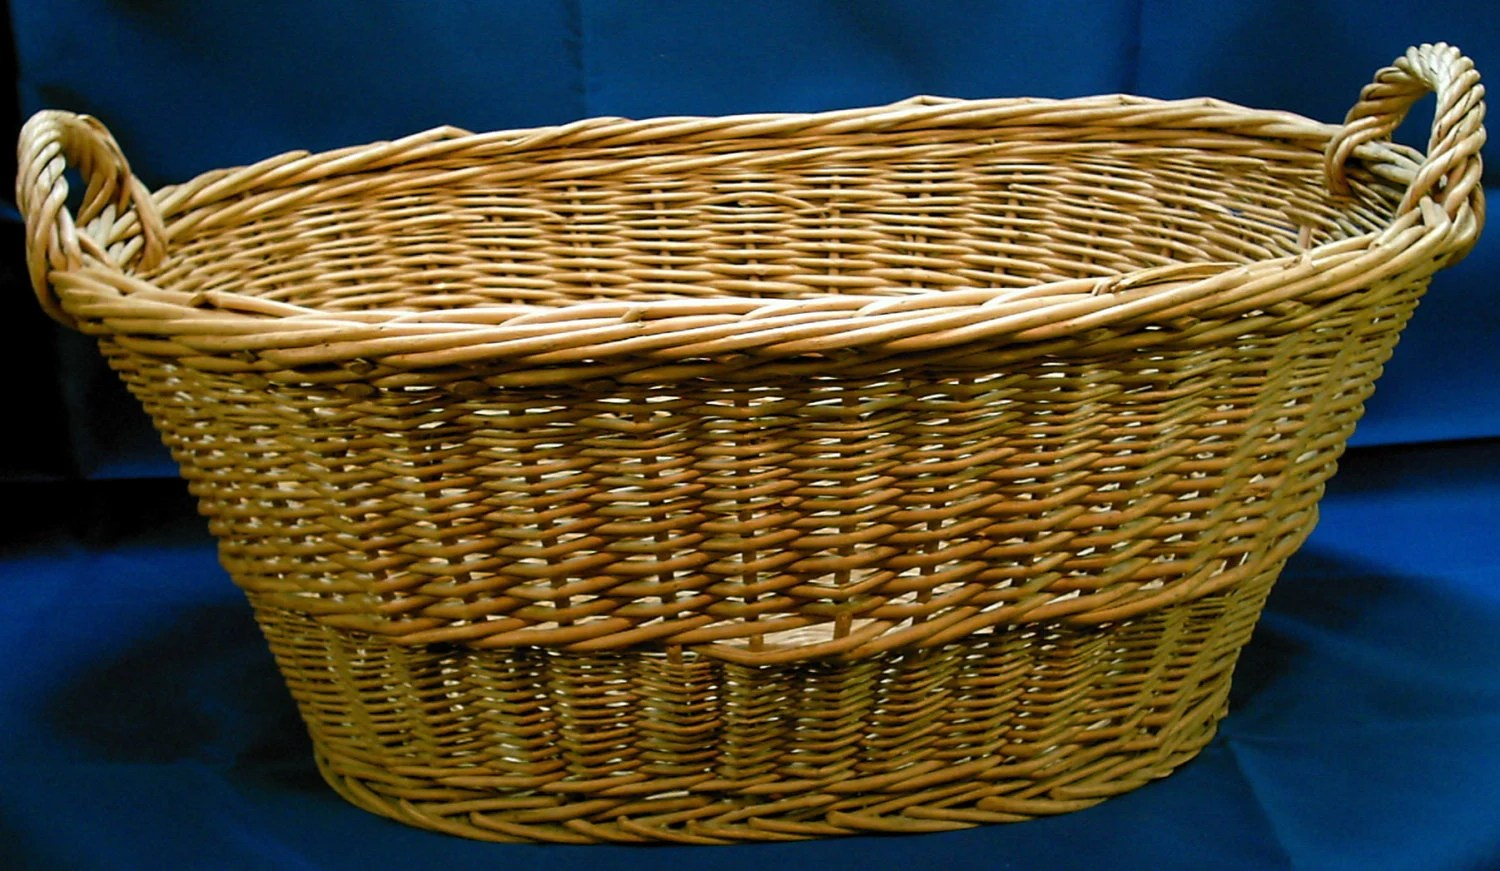 Wicker Laundry Baskets Large Wicker Basket Laundry Basket